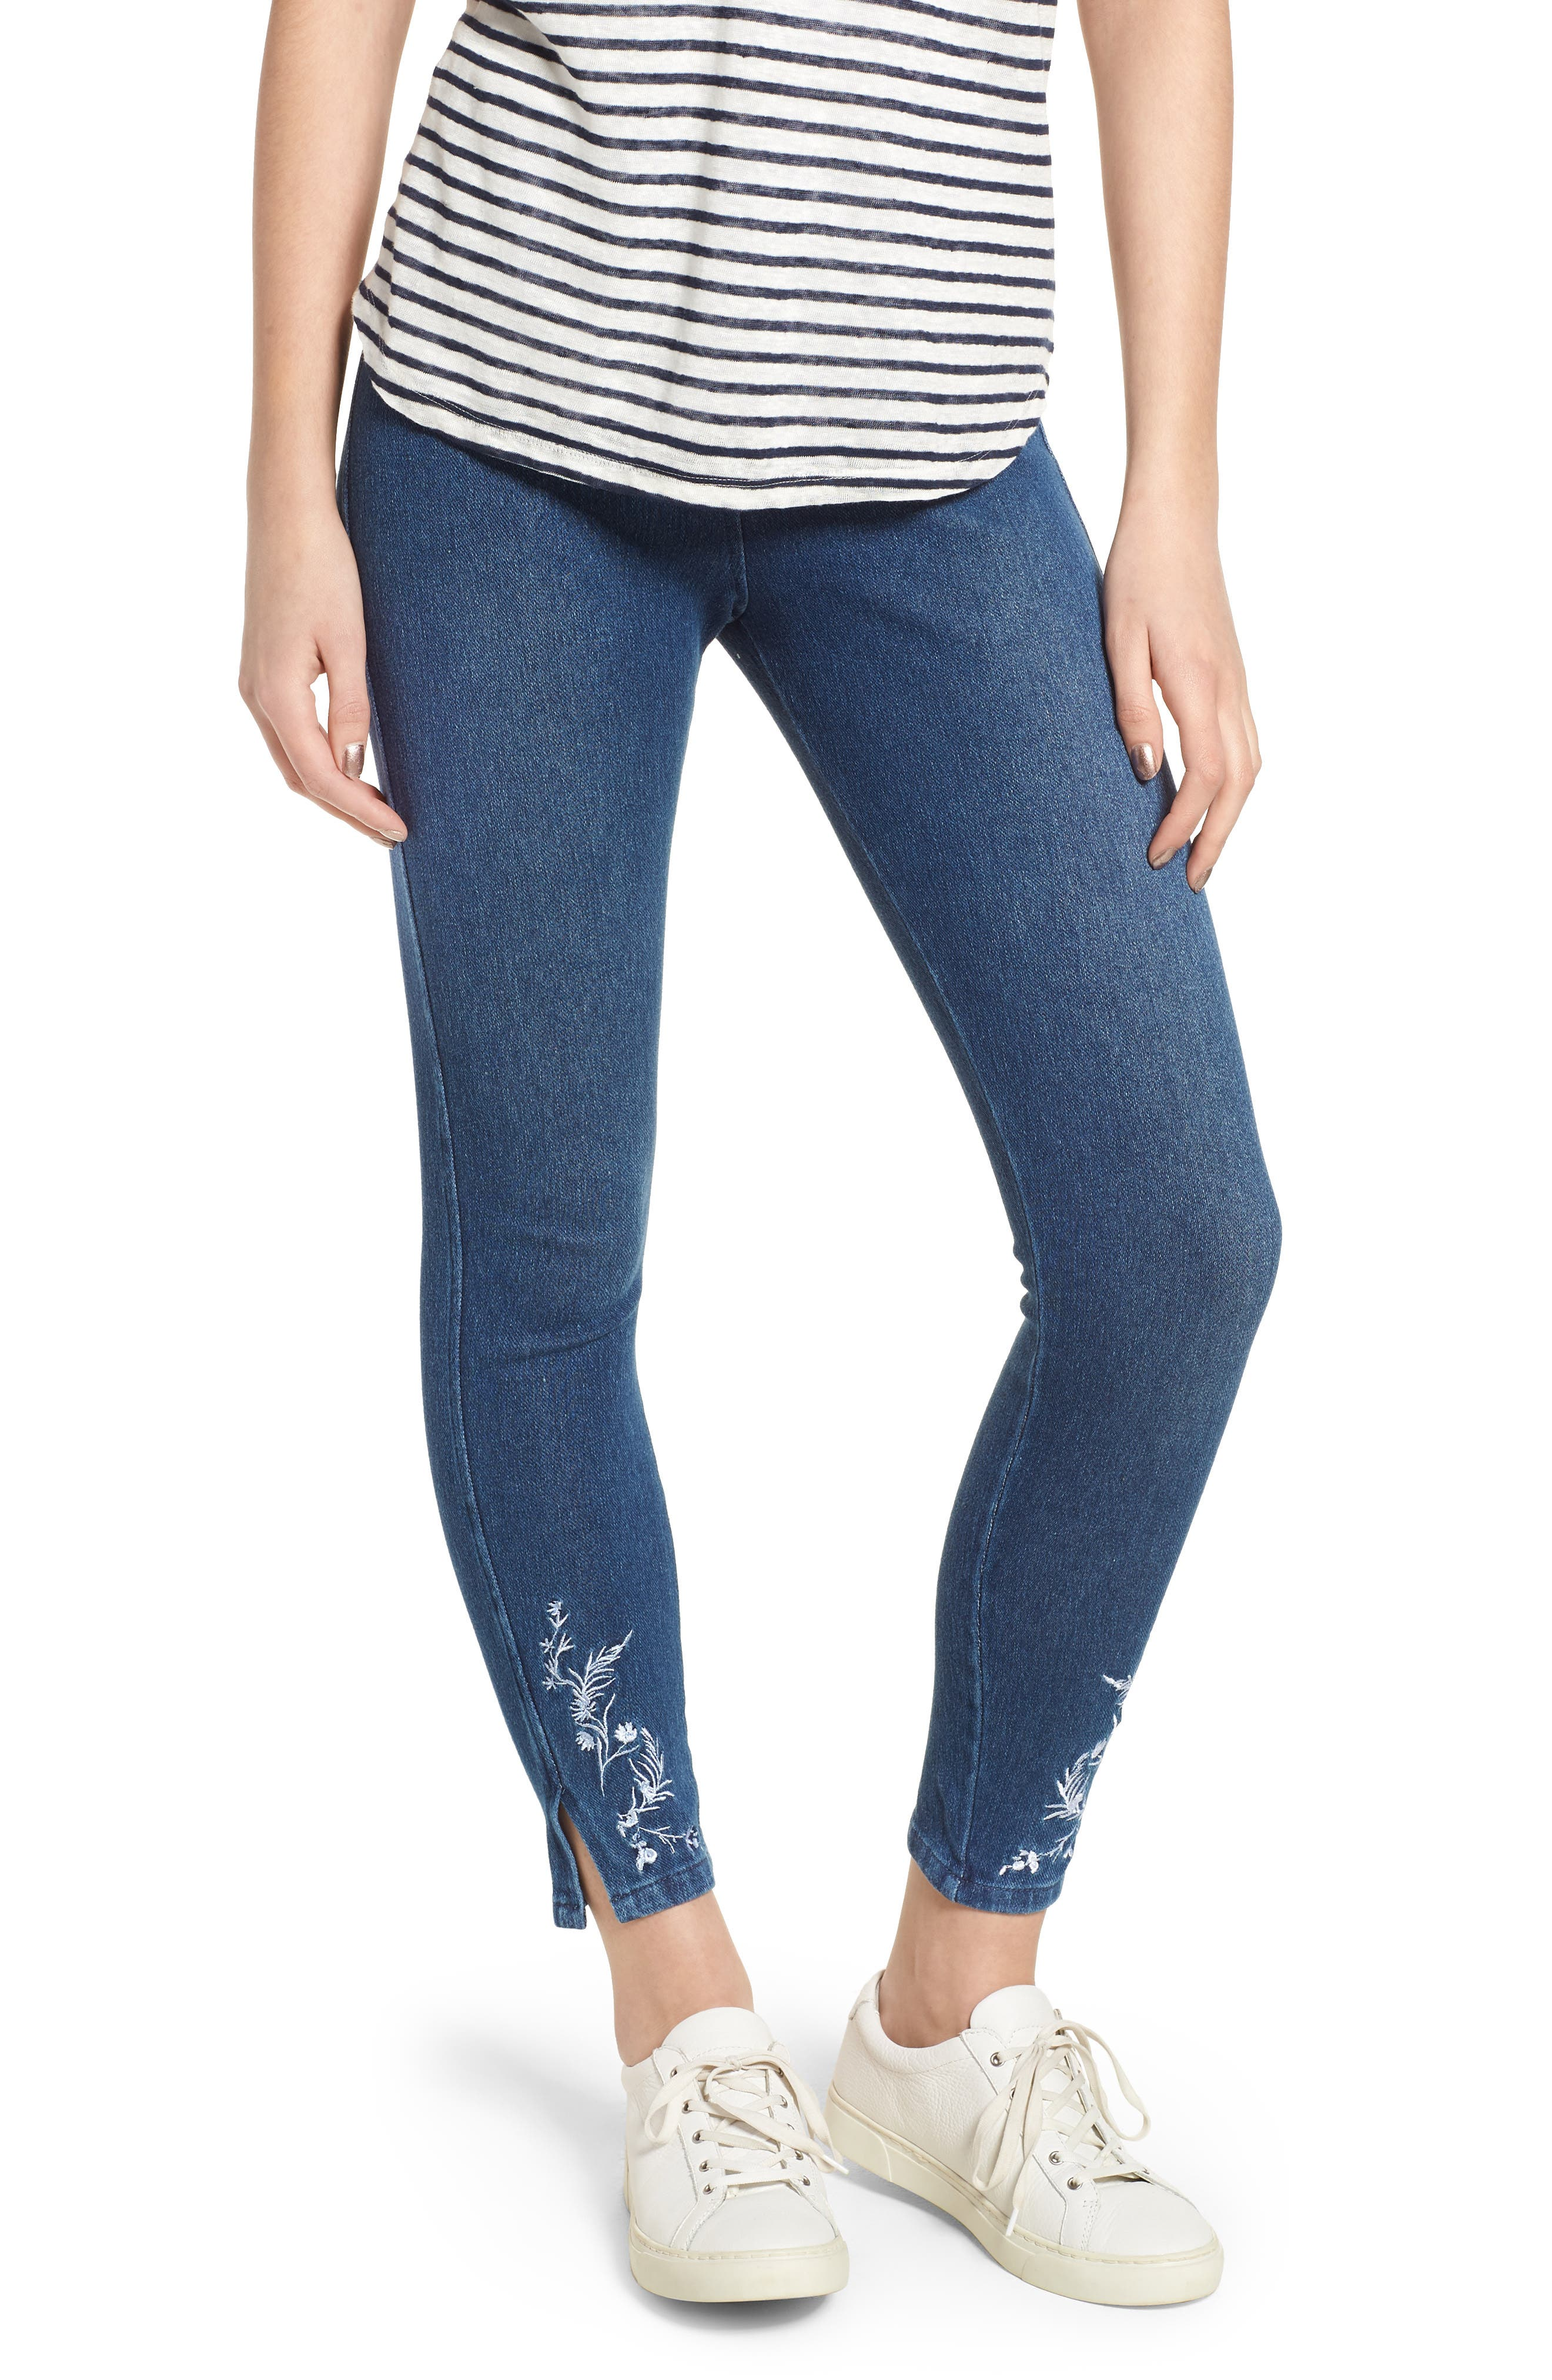 Cooper High Waist Denim Leggings,                             Main thumbnail 1, color,                             400